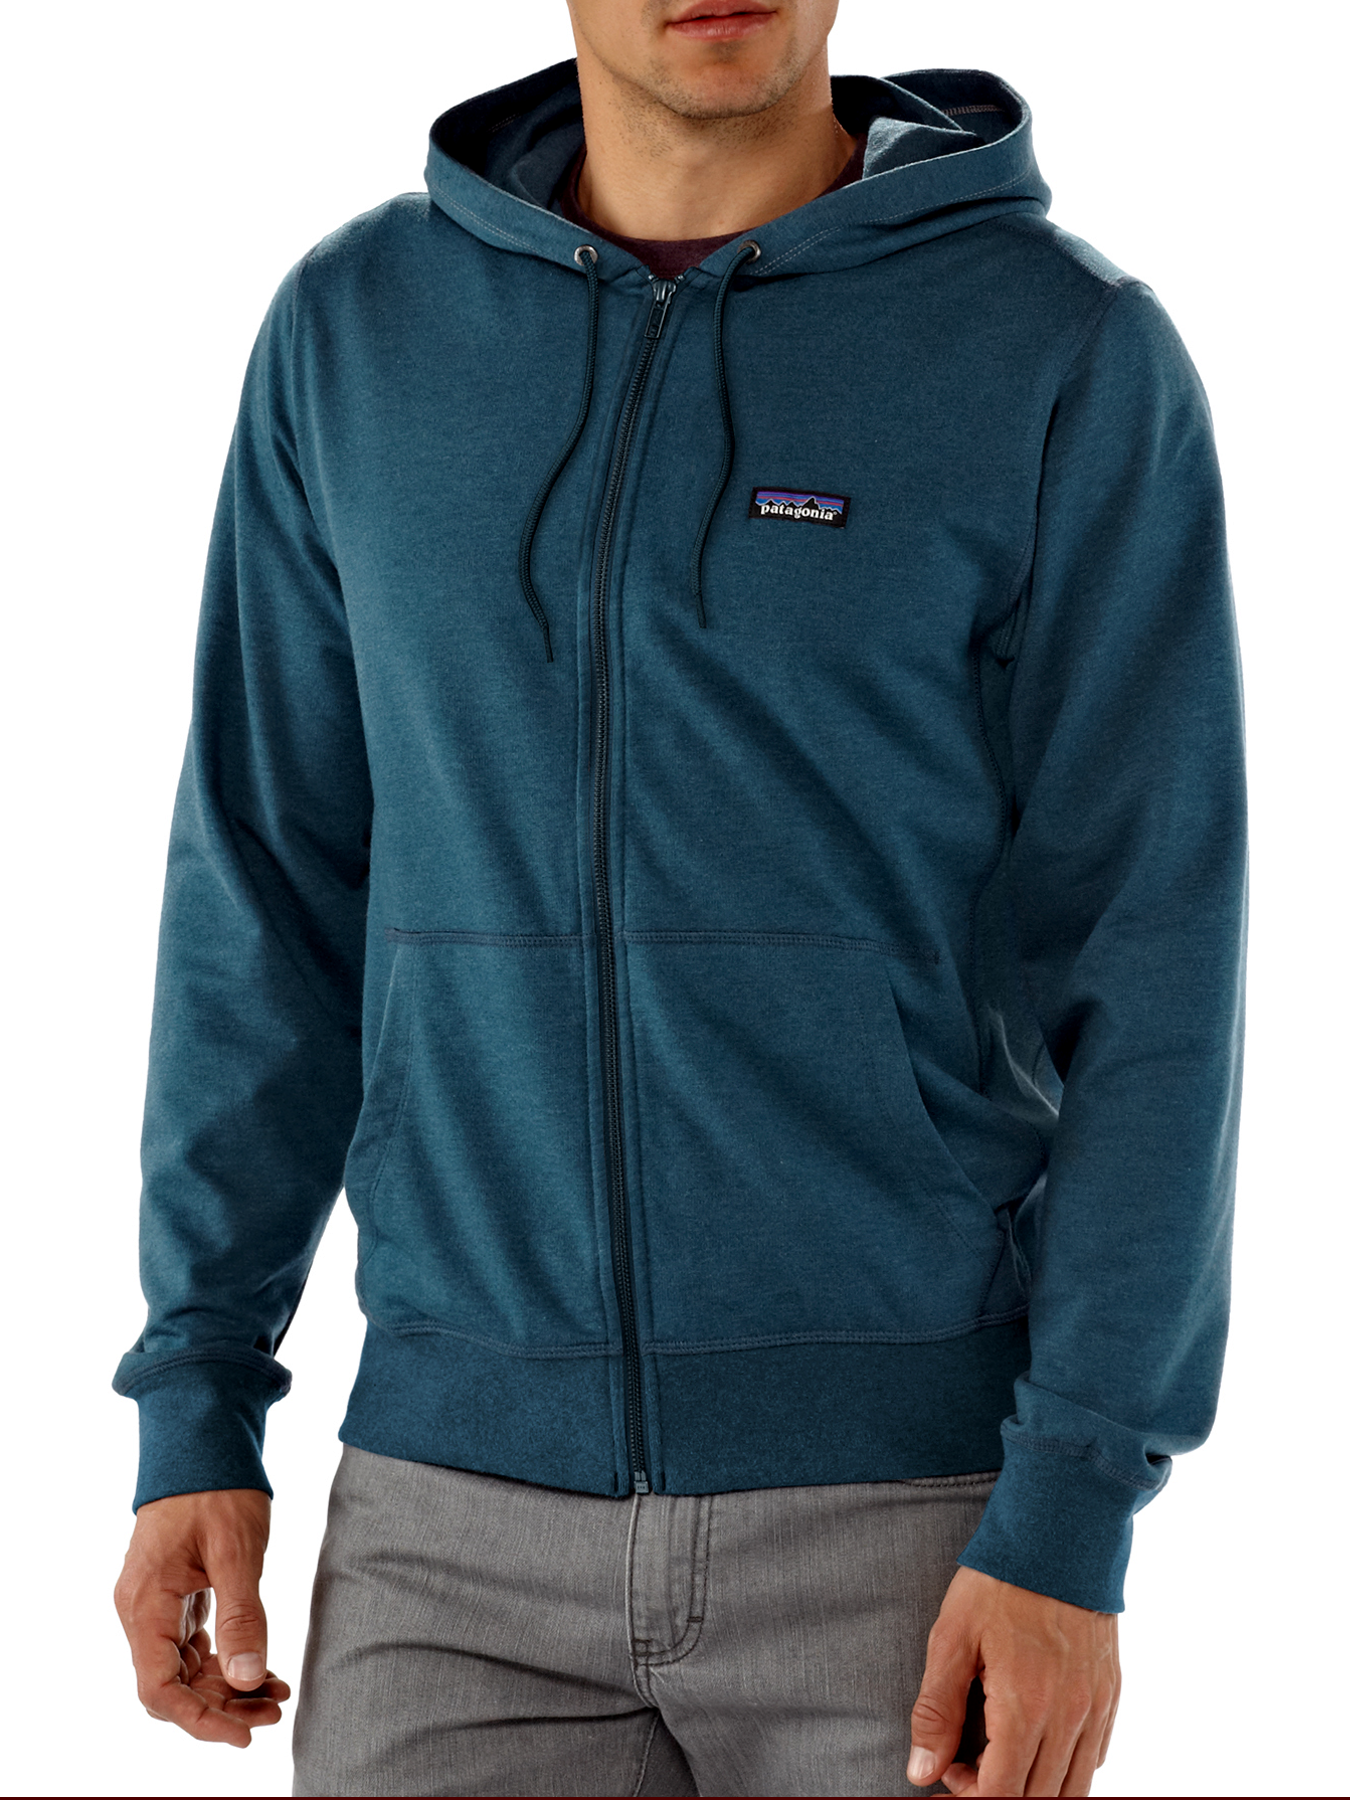 Patagonia Men s Lightweight Full-Zip Hoody CUSTOM CORPORATE ORDERS ONLY -  Minimum order 10 units 1b2673a4f